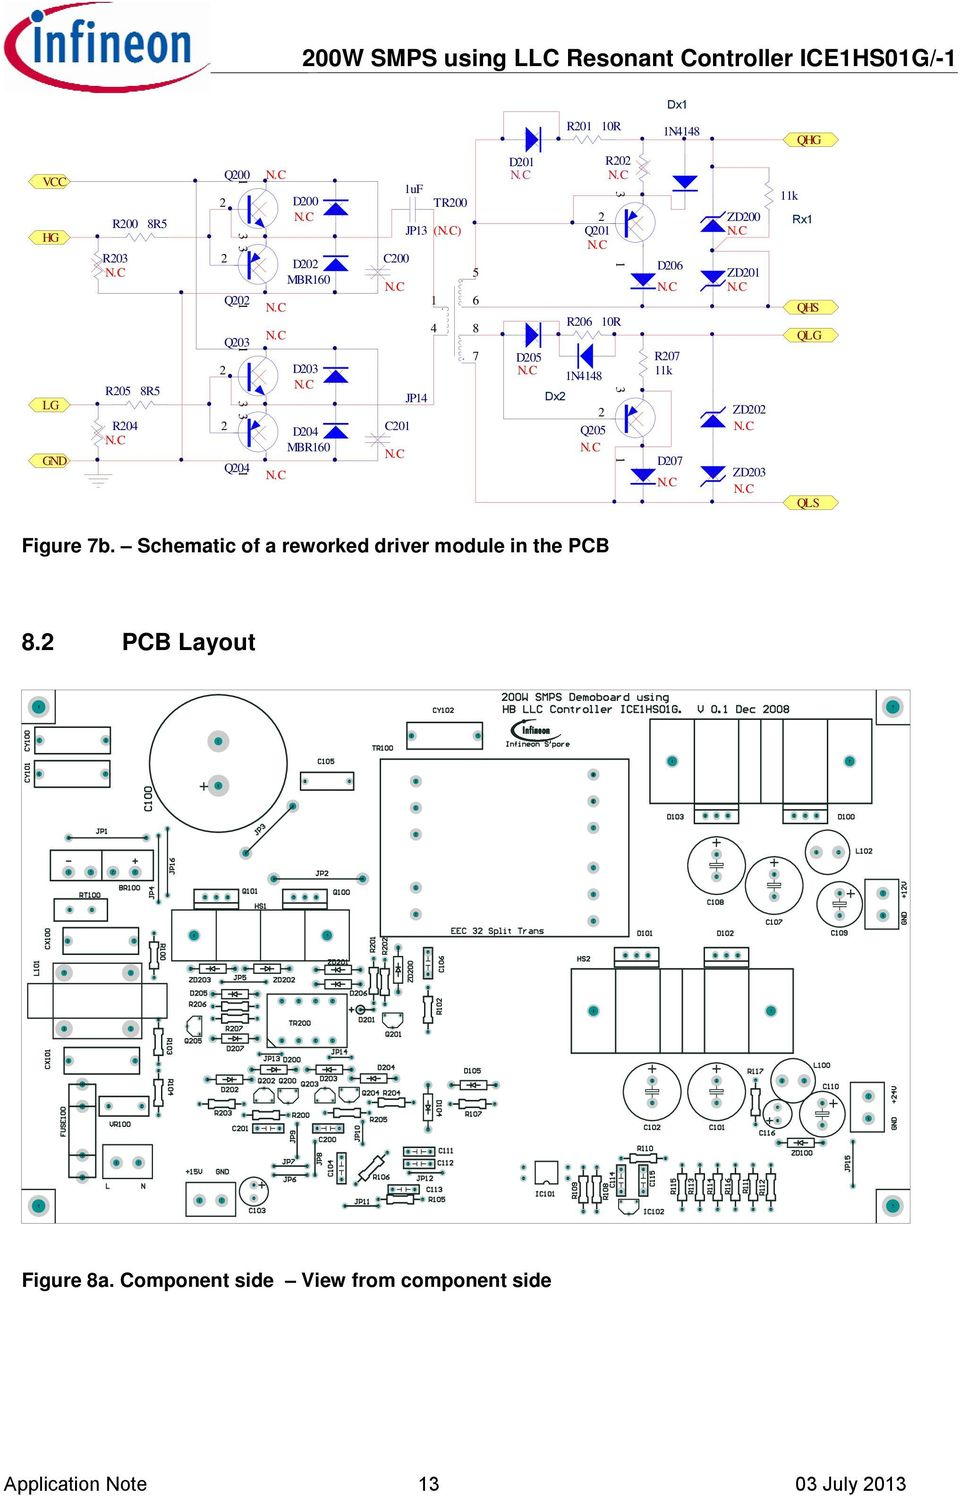 Application Note Evalhs Ice1hs01g 200w Smps Evaluation Board Using Figure 2 Schematic Of The Led Driver Reference Design Q05 N8 D06 R07 K D07 Zd00 Zd0 Qhg Rx Qhs Qlg Qls